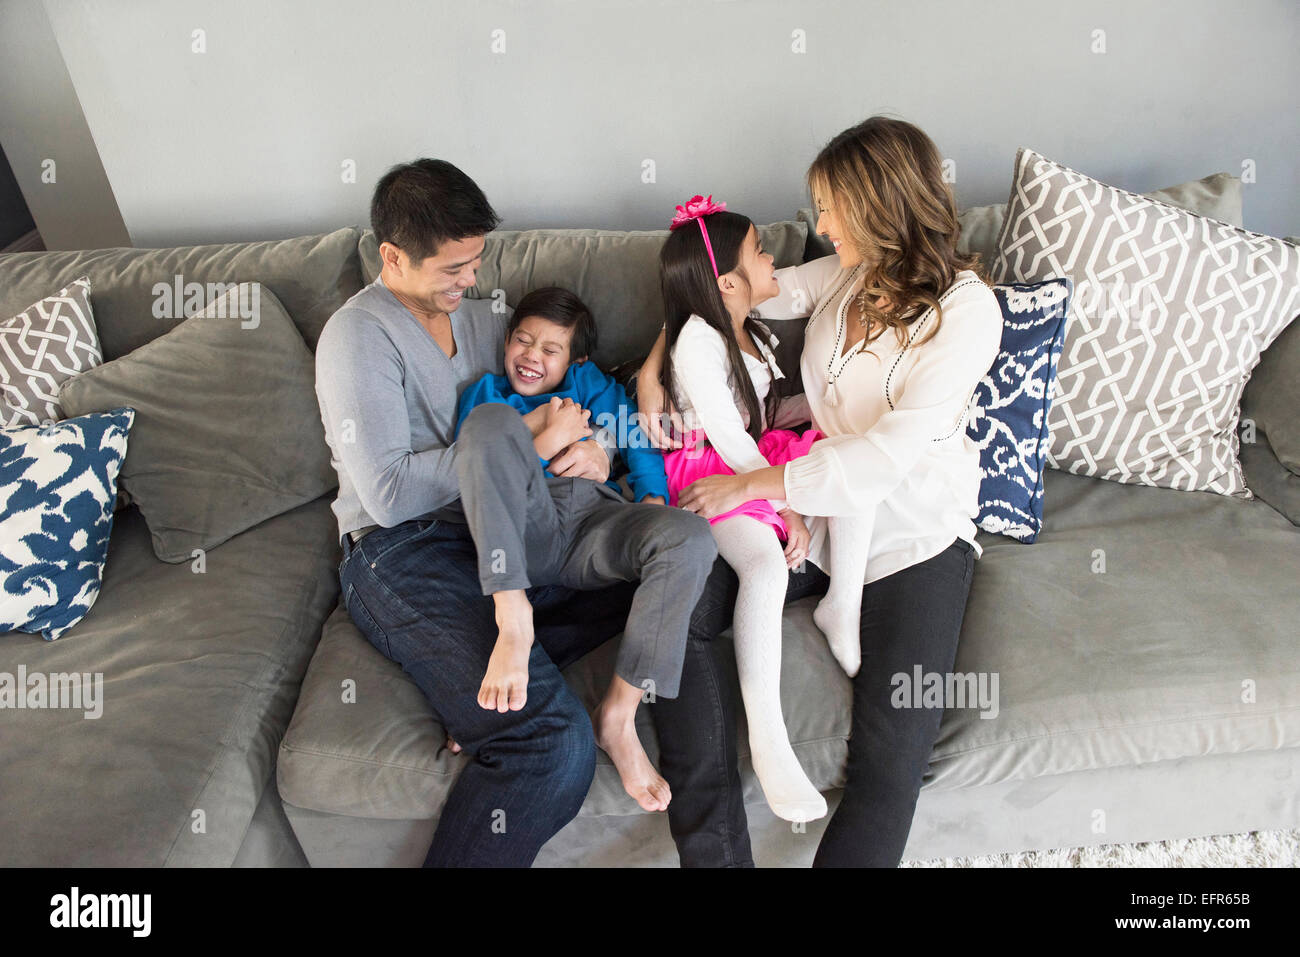 Mature couple and two children sitting on living room sofa - Stock Image